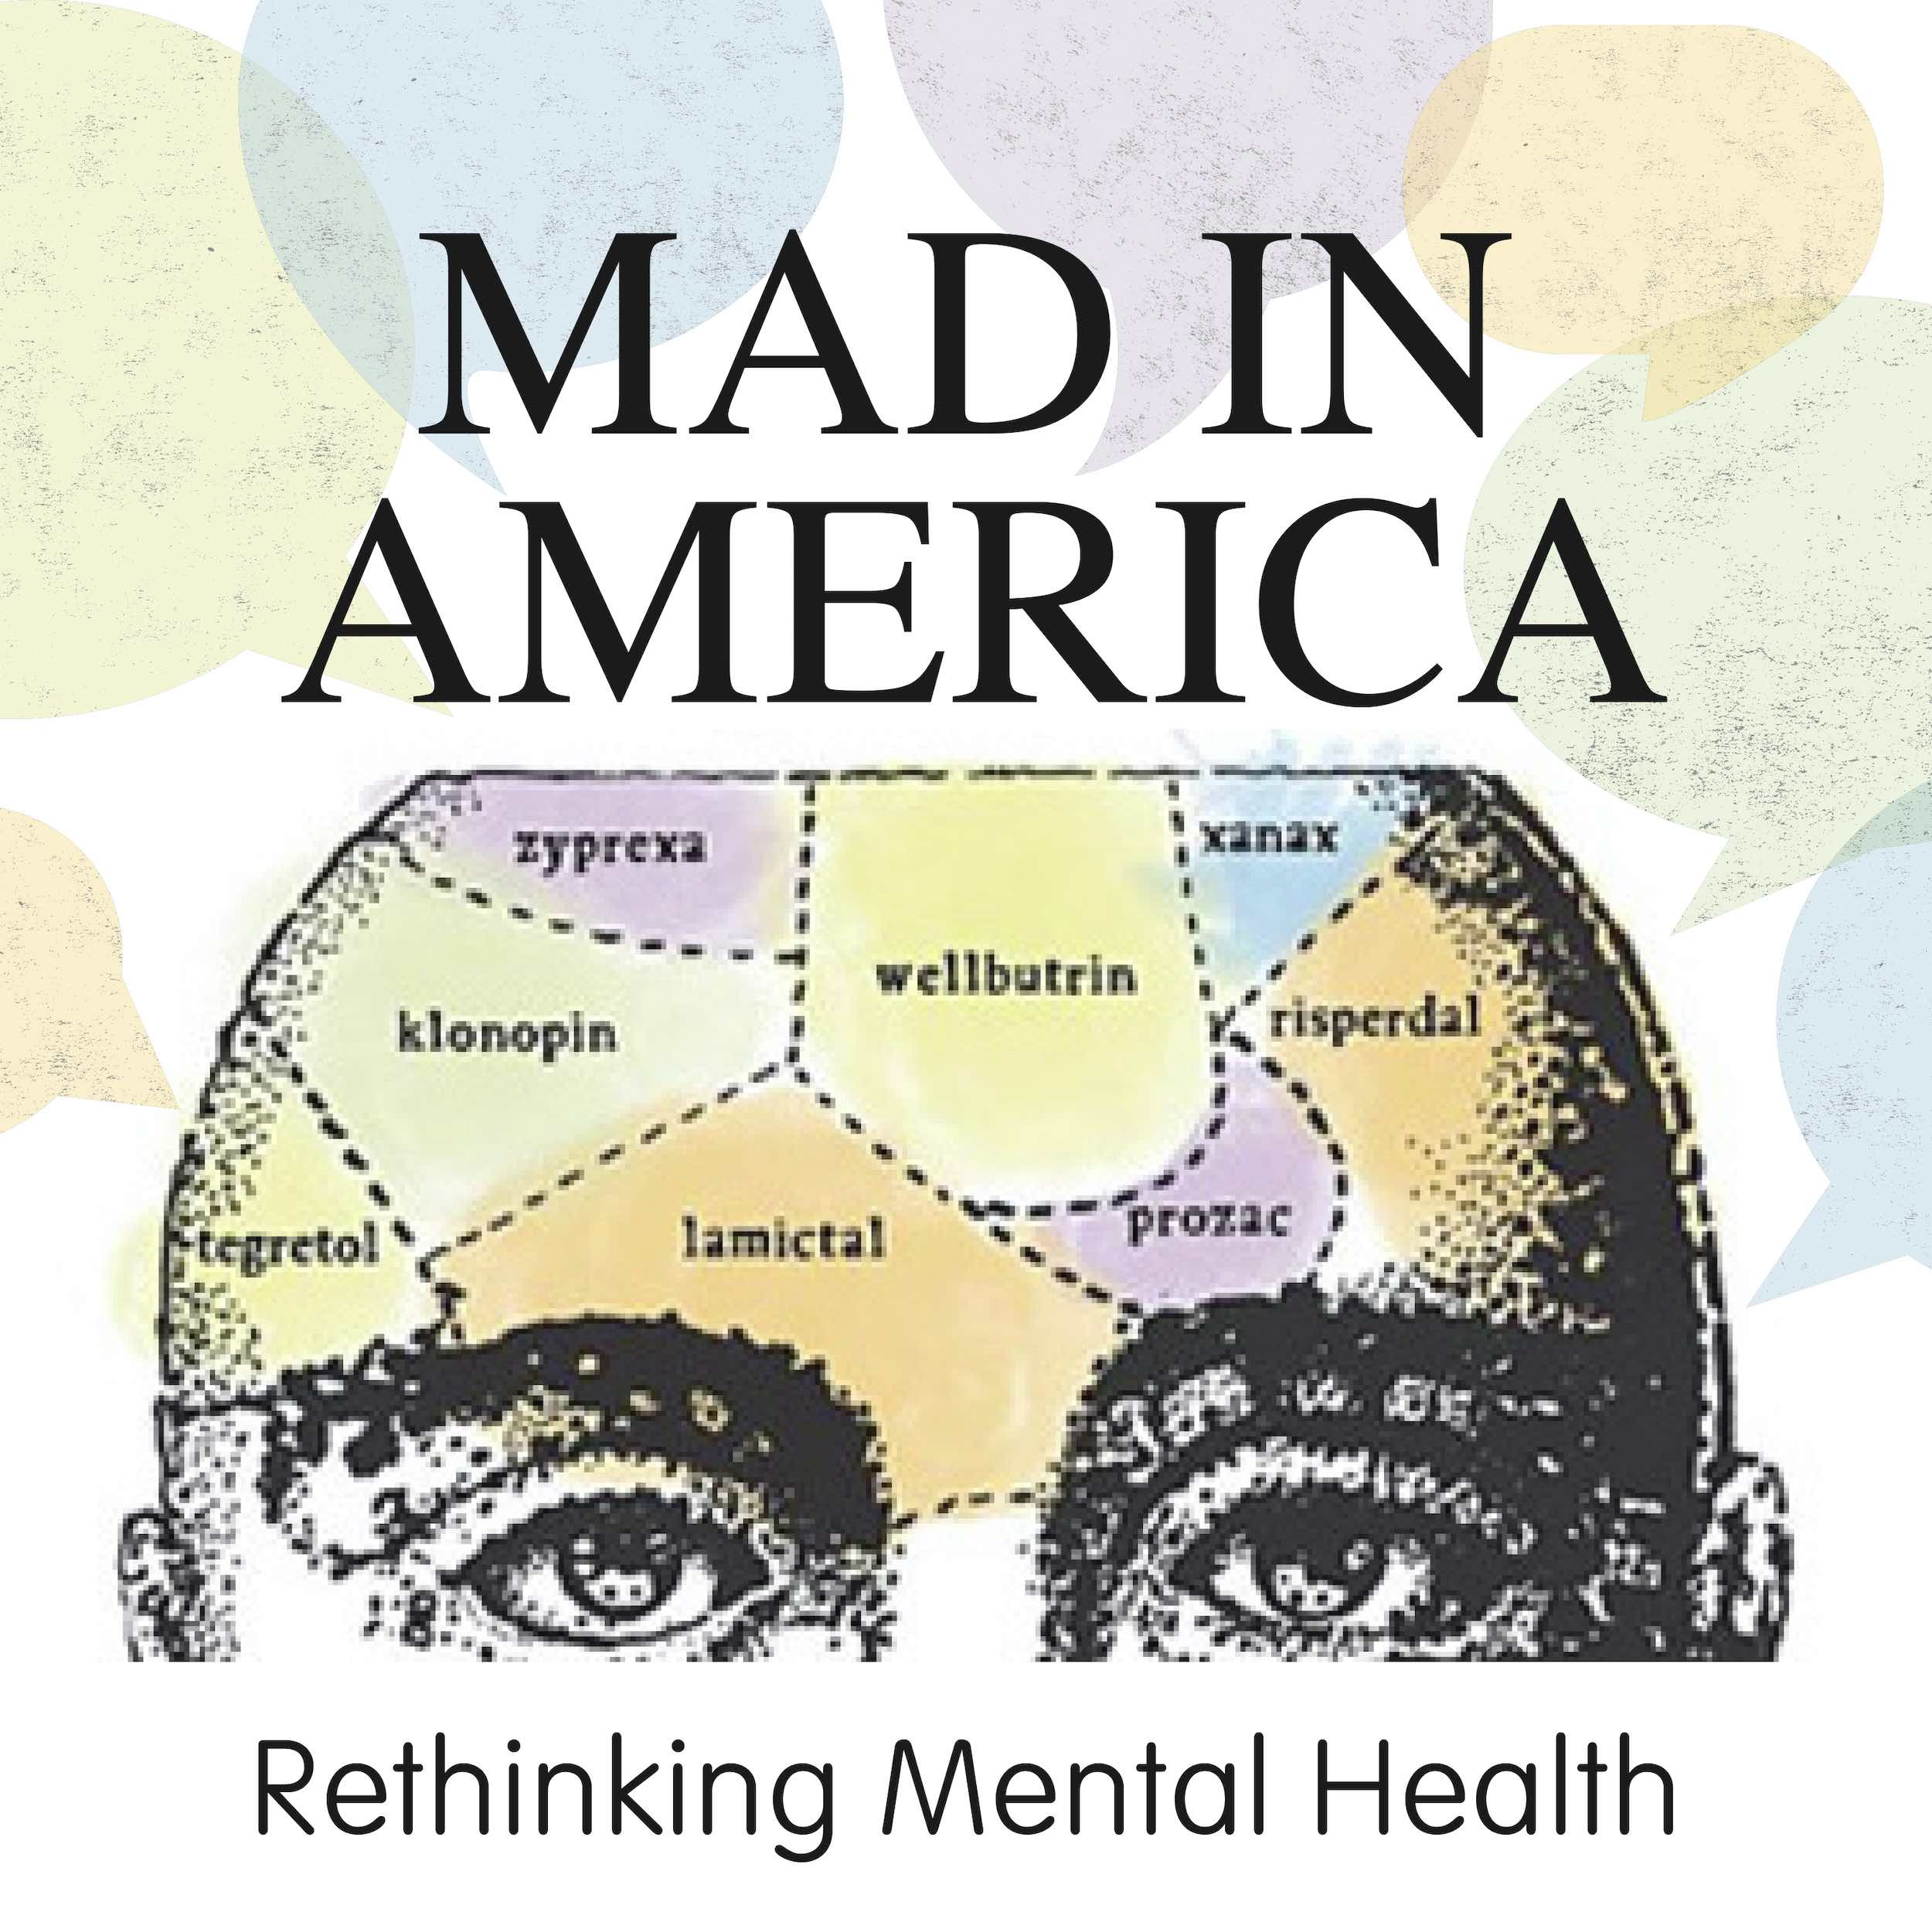 Mad in America: Rethinking Mental Health - Jodi Aman - Anxiety, I'm So Done with You